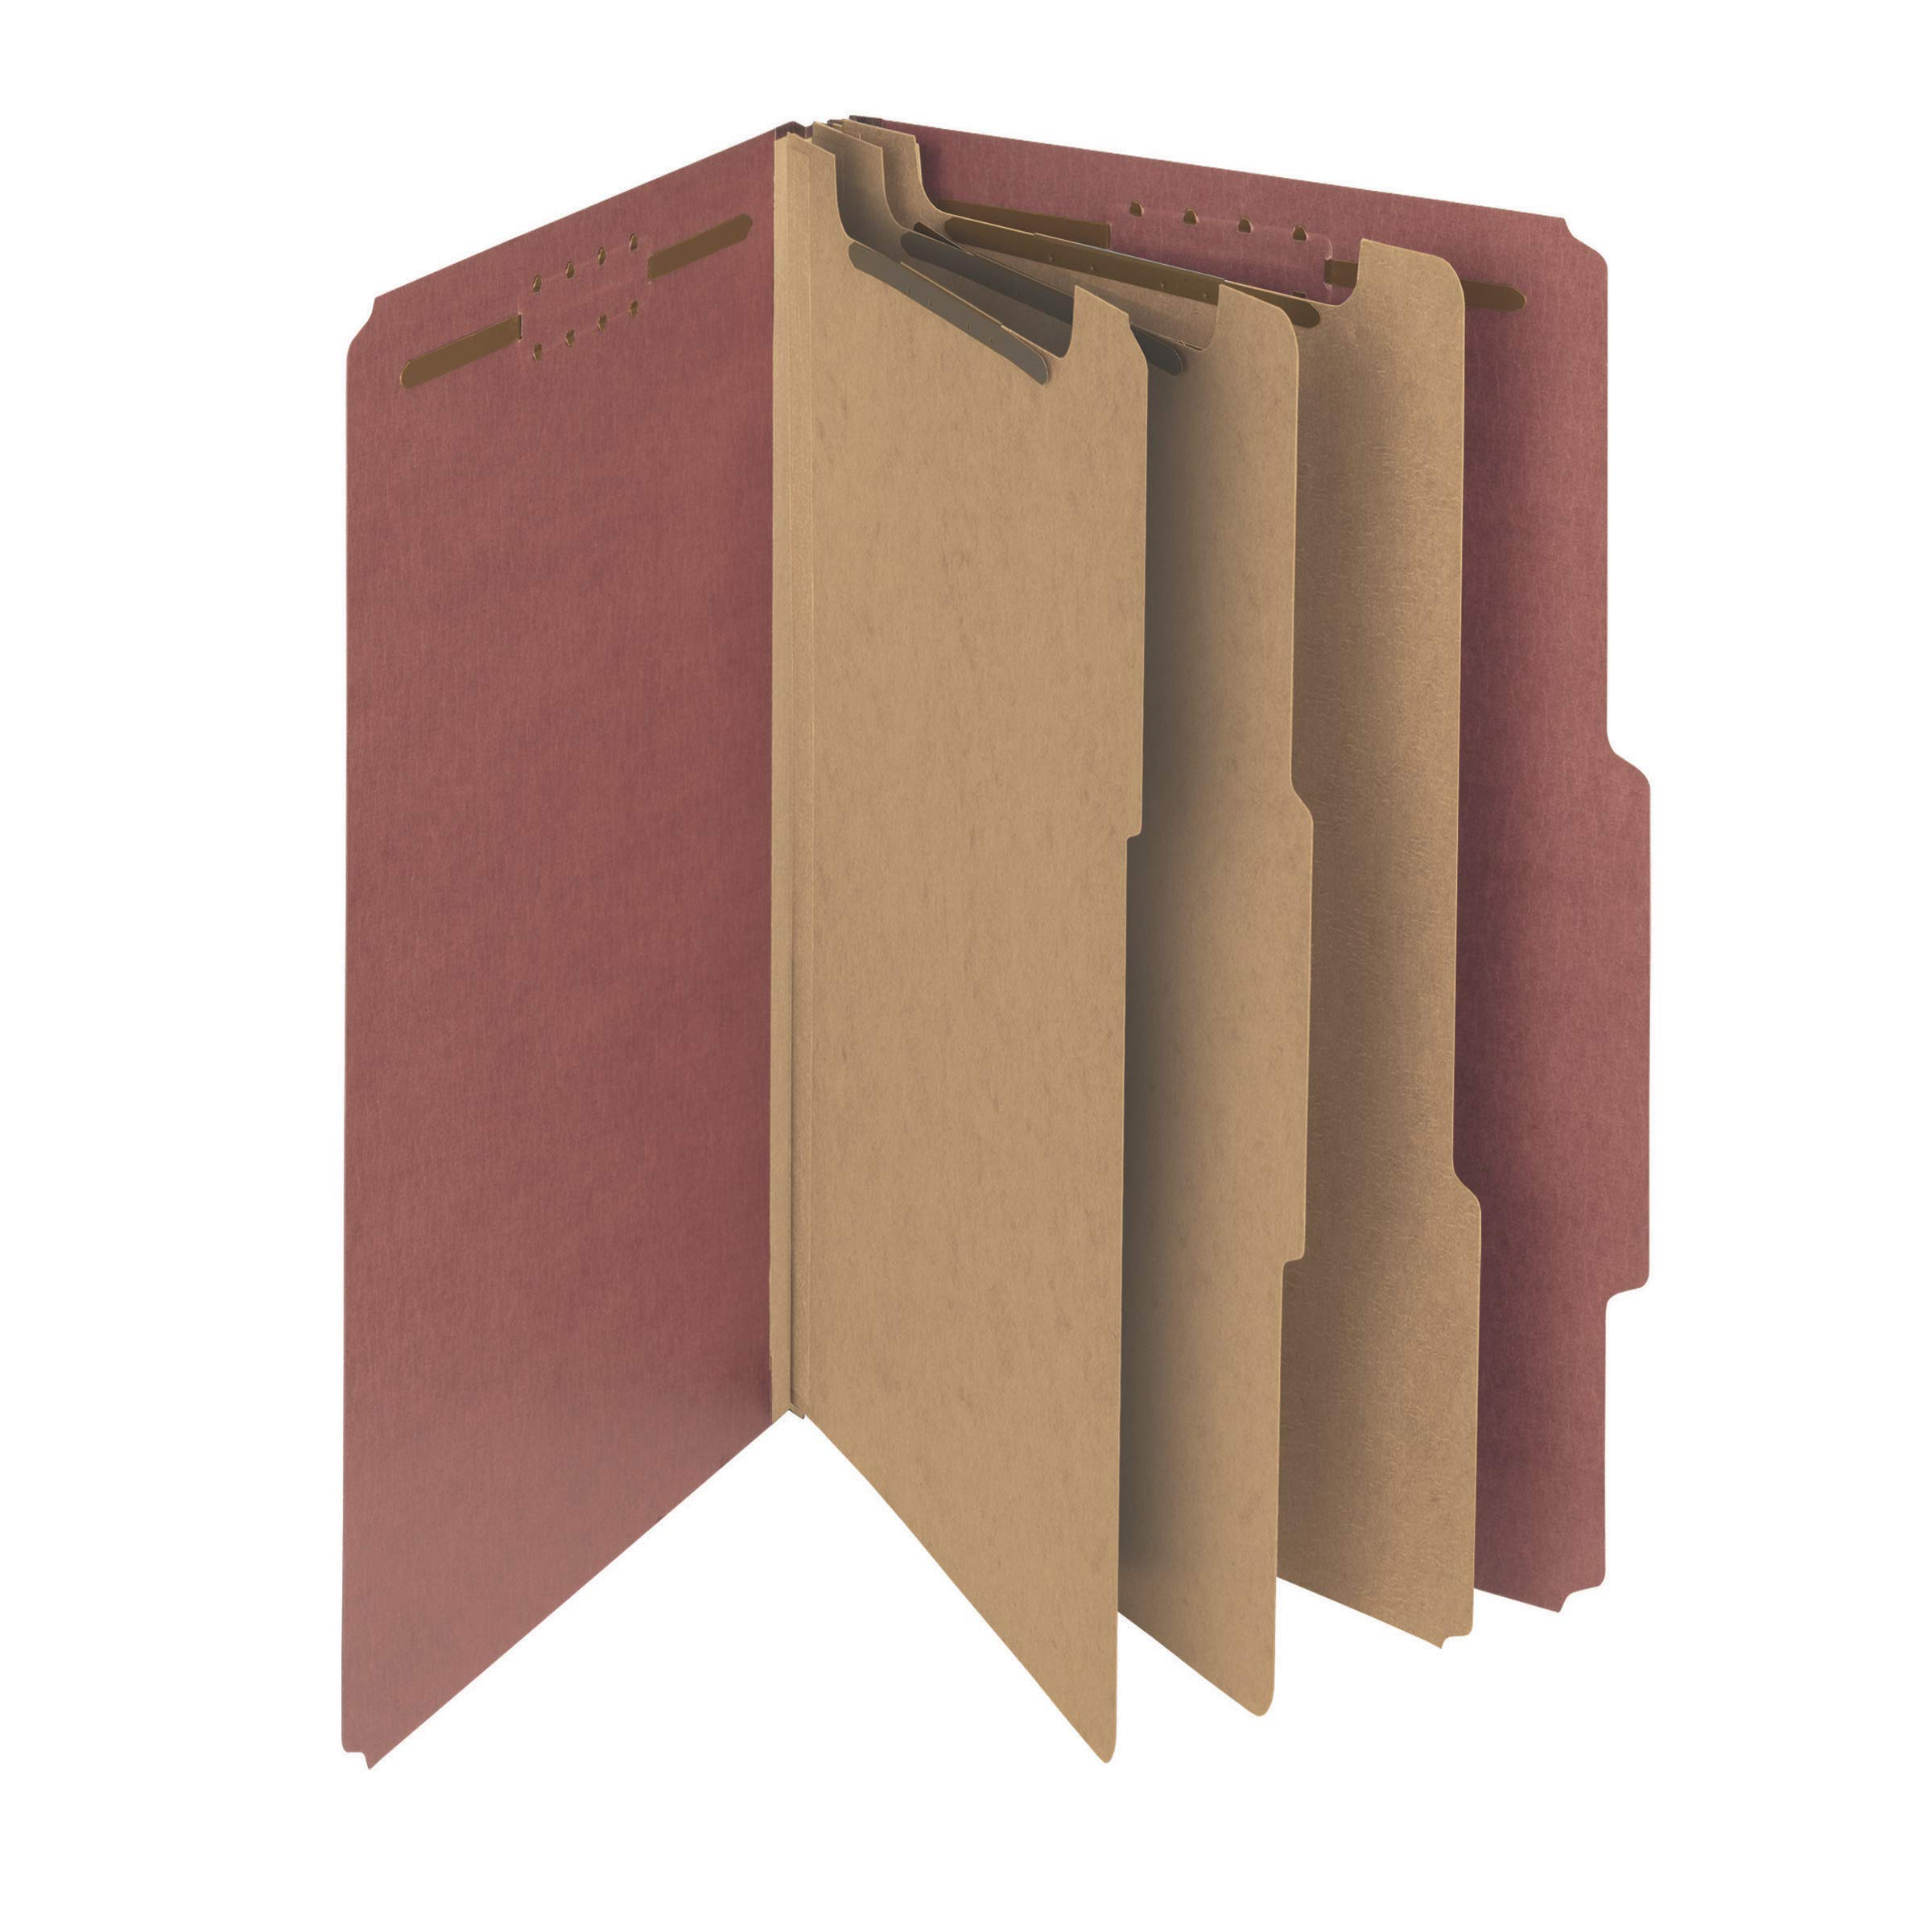 Smead 100% Recycled Pressboard Classification File Folder, 3 Dividers, 3'' Expansion, Legal Size, Red, 10 per Box (19099) by Smead